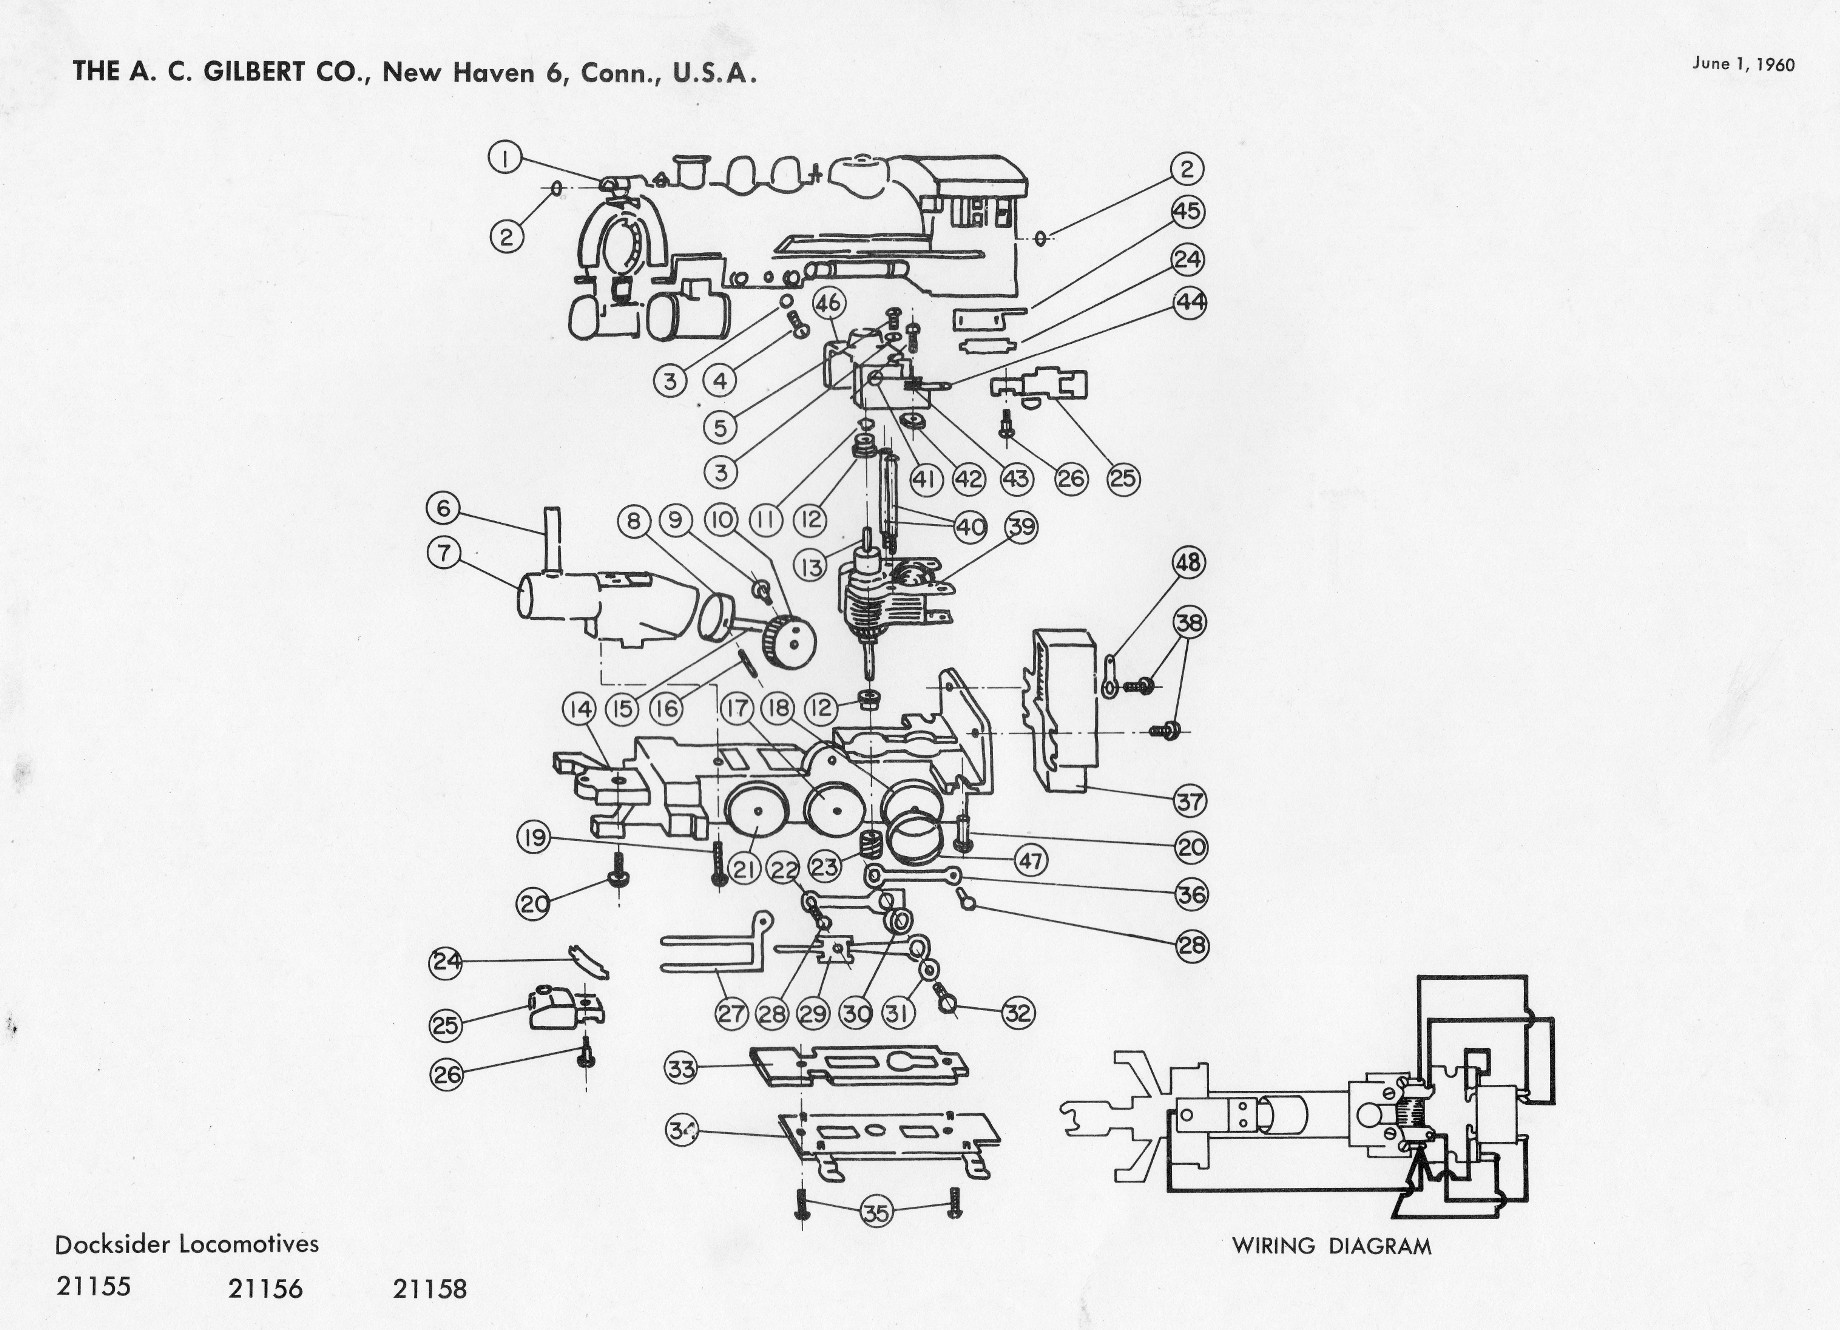 American Flyer Locomotive Docksider Switcher Parts List Amp Diagram